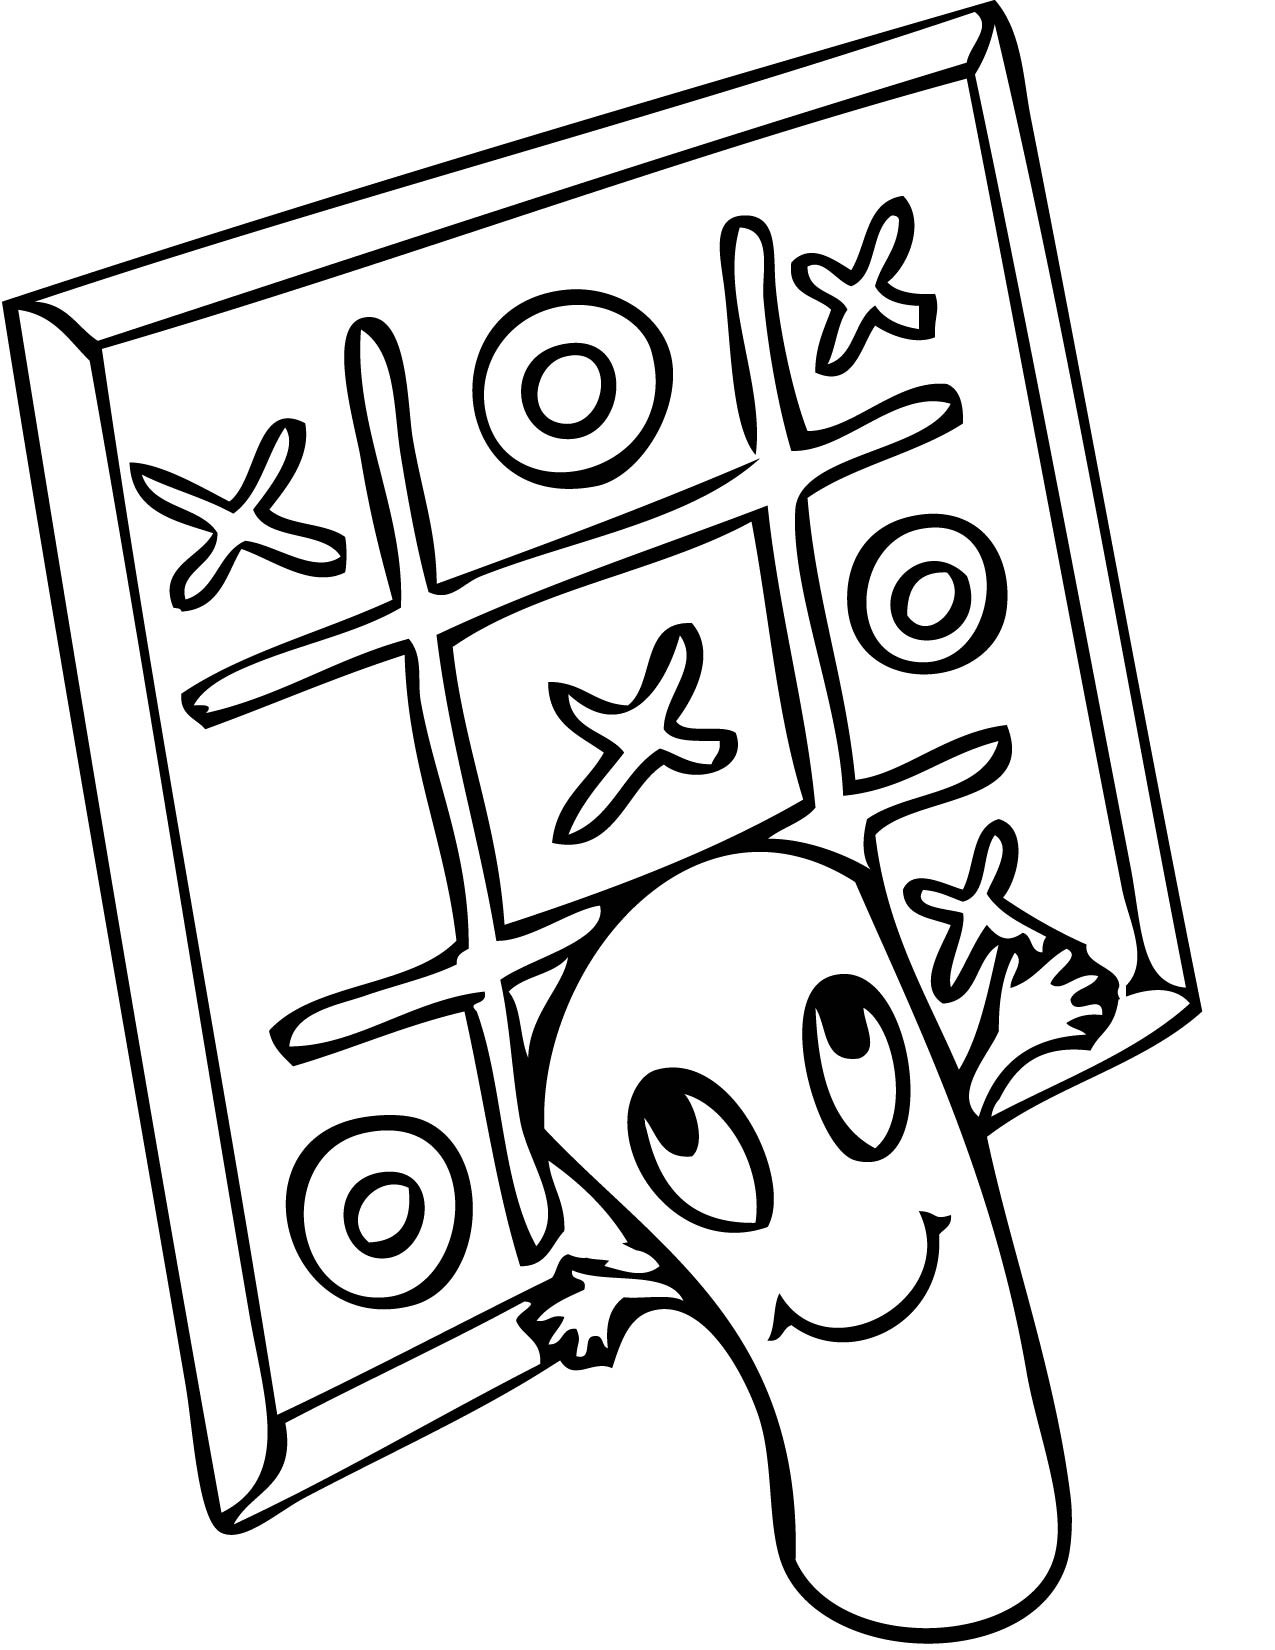 Coloring Book Games  Game Controller Coloring Page Sketch Coloring Page